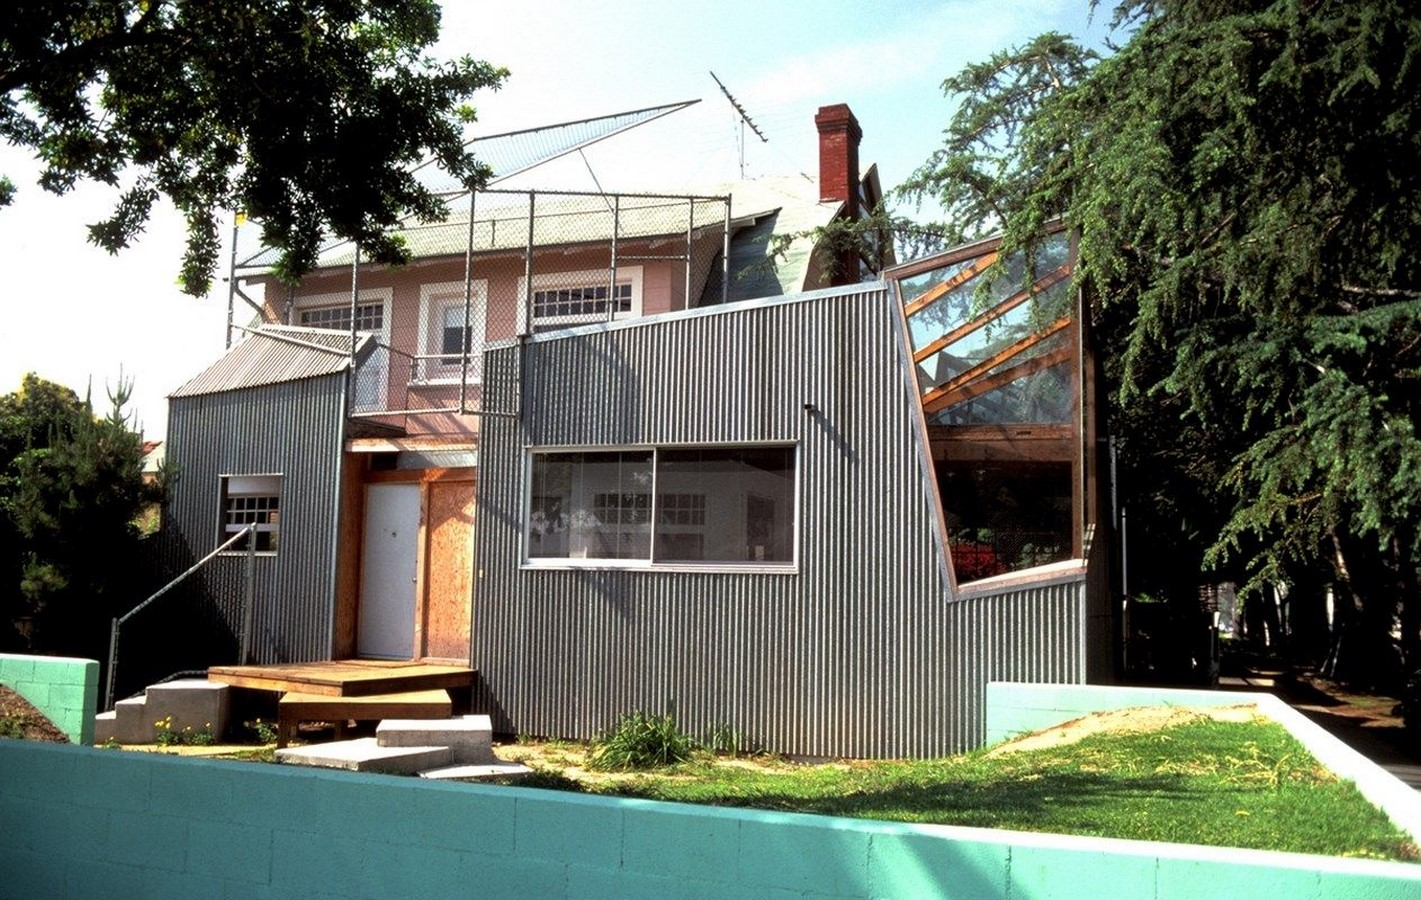 Gehry Residence by Frank Gehry: Balance between old and new - Sheet3